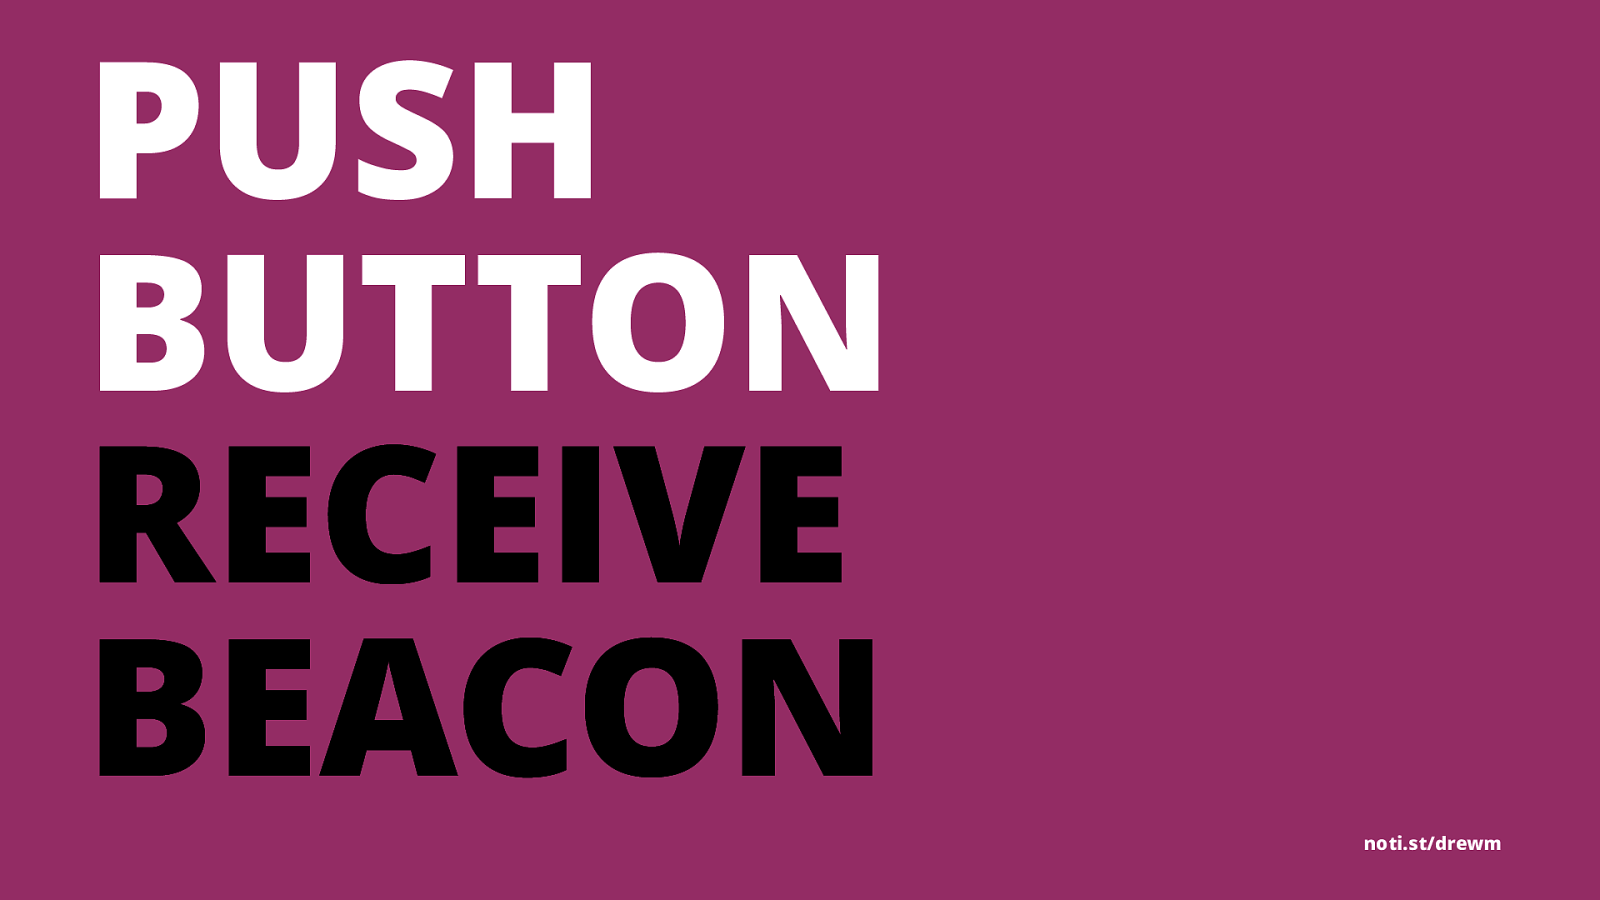 Push Button, Receive Beacon